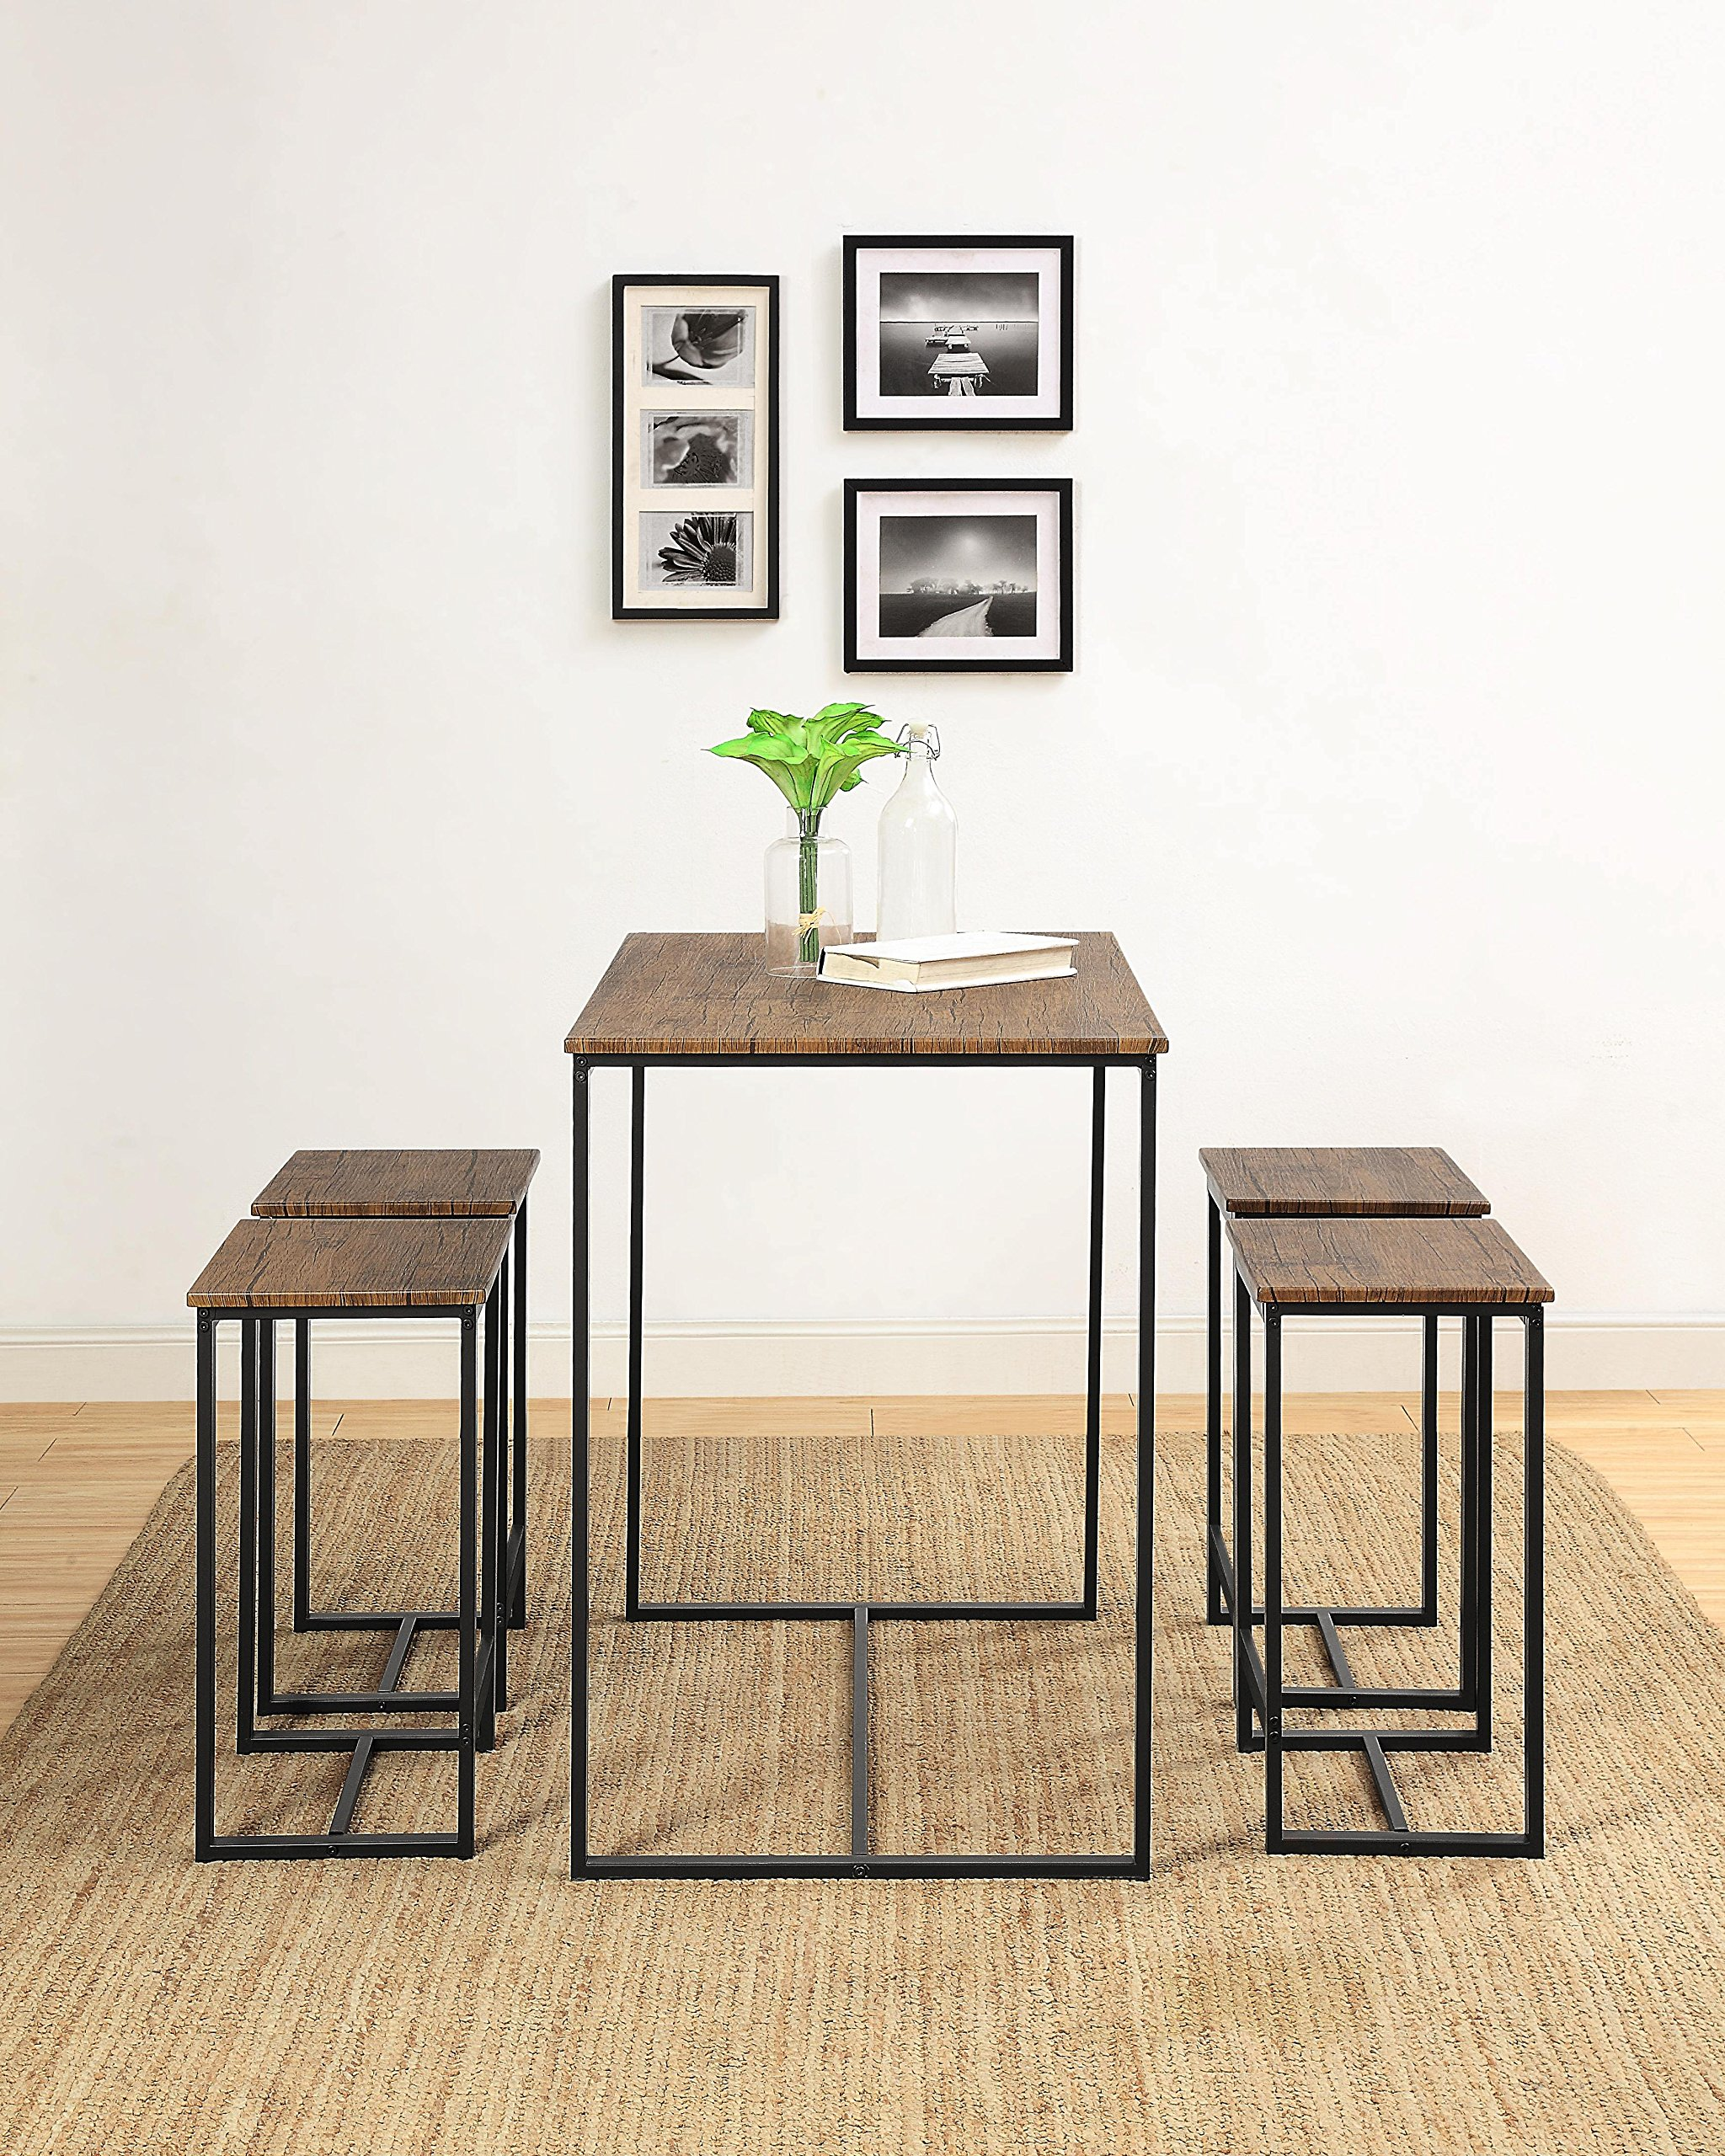 Abington Lane Kitchen Table Set - Versatile, Tall, Modern Table Set for Any Room or Occasion (4 Stools) by Abington Lane (Image #4)